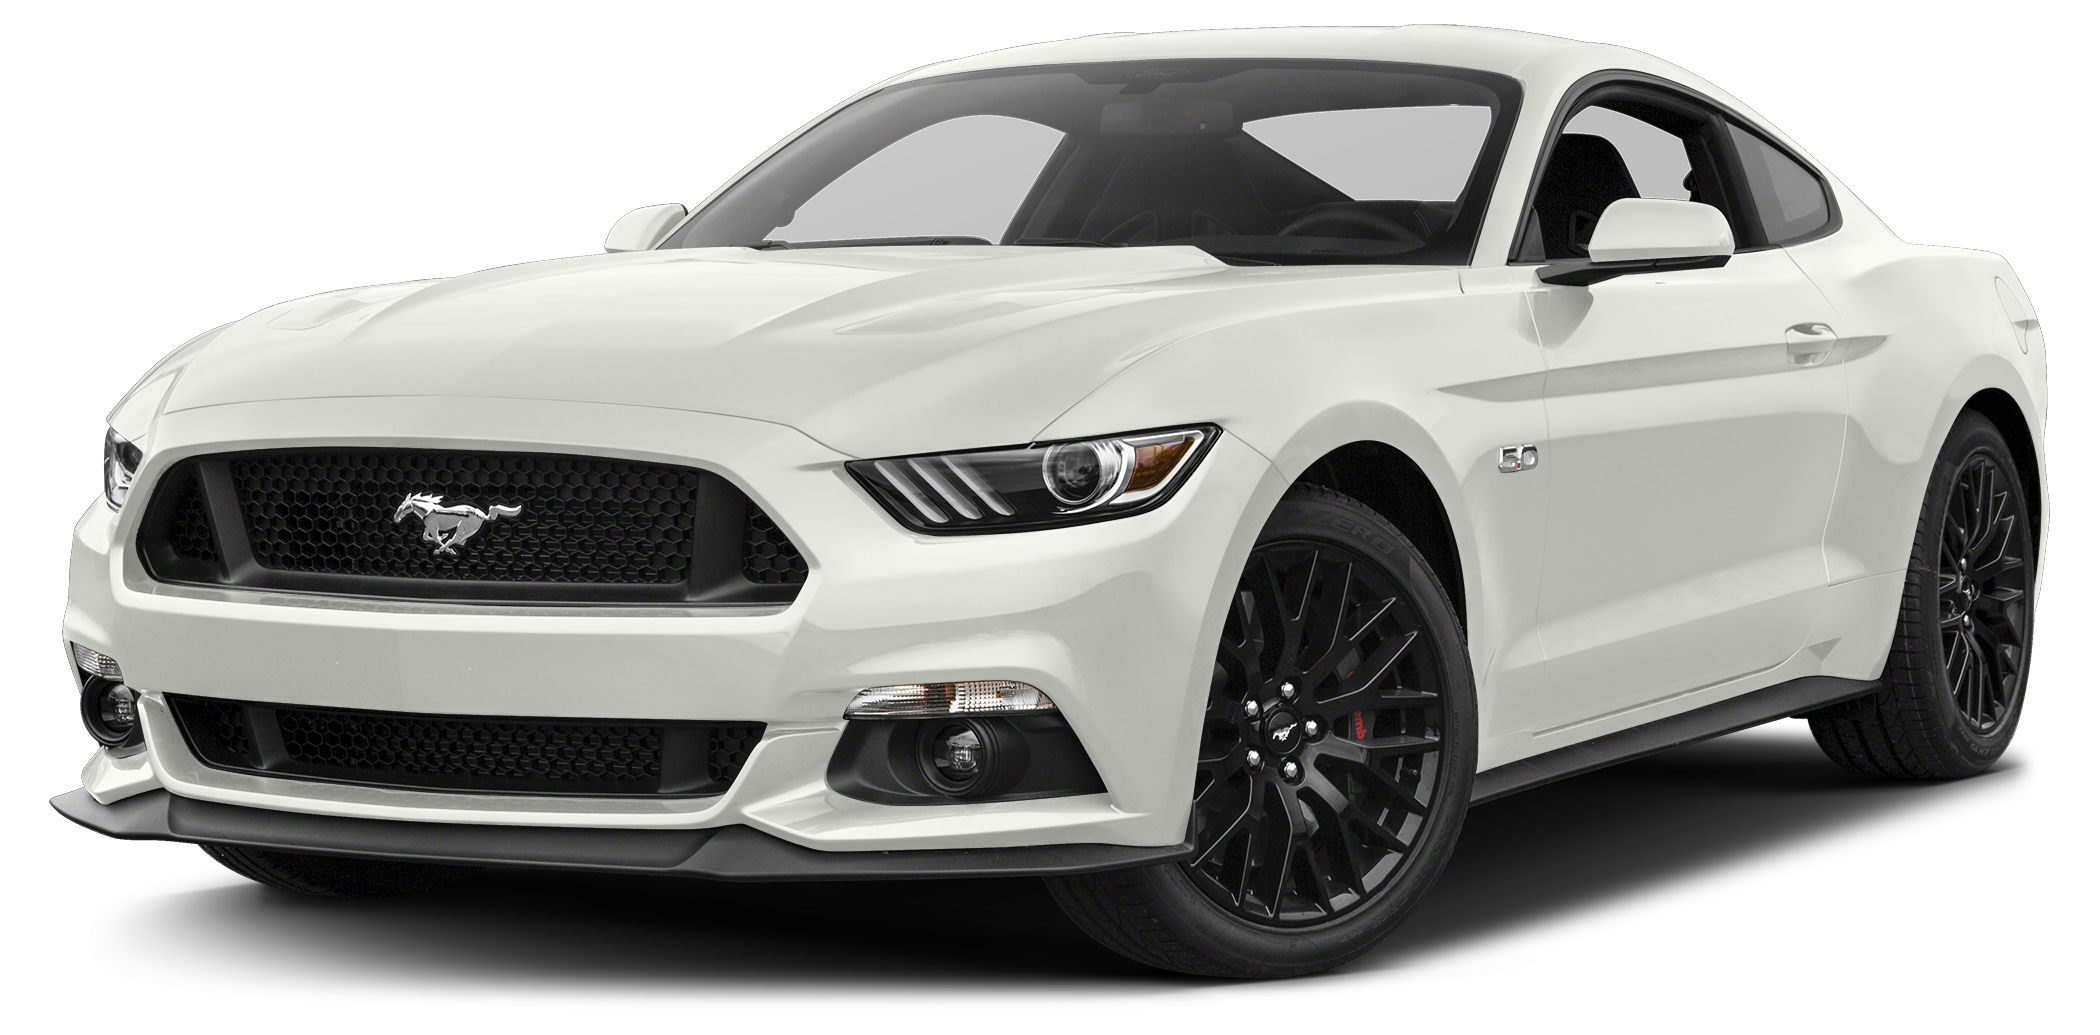 2017 Ford Mustang GT The Ford Mustang is an American classic that lives on The body has been desi